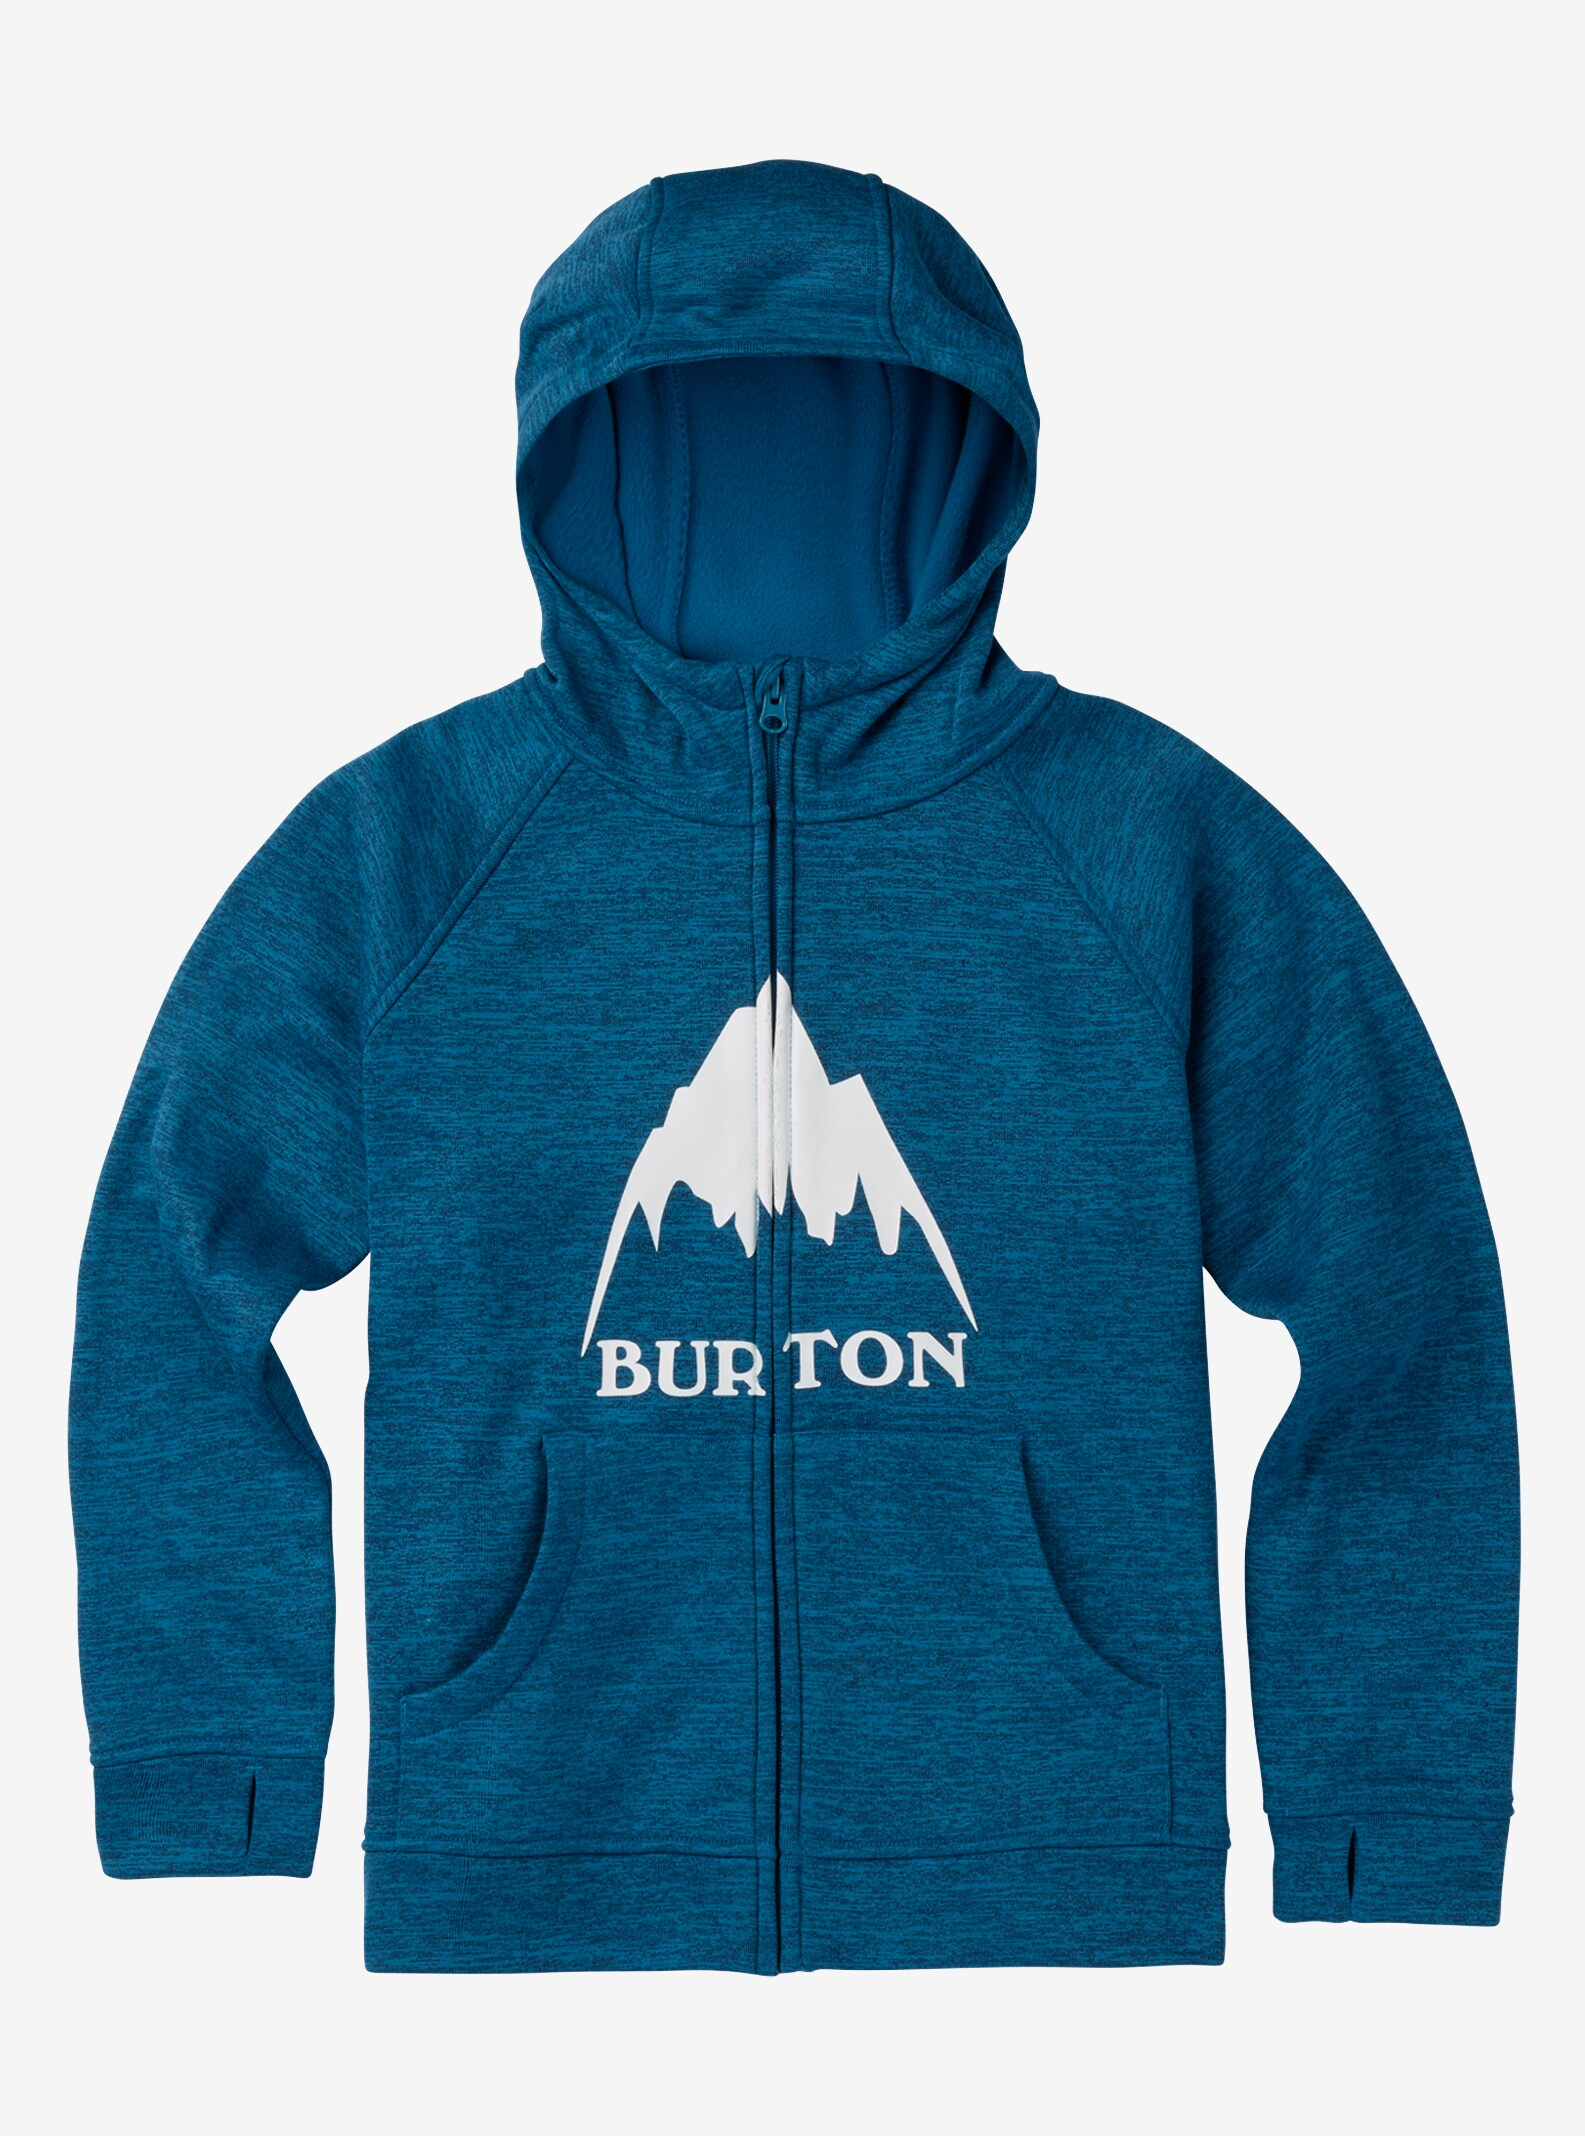 Boys' Burton Oak Full-Zip Hoodie shown in Mountaineer Heather